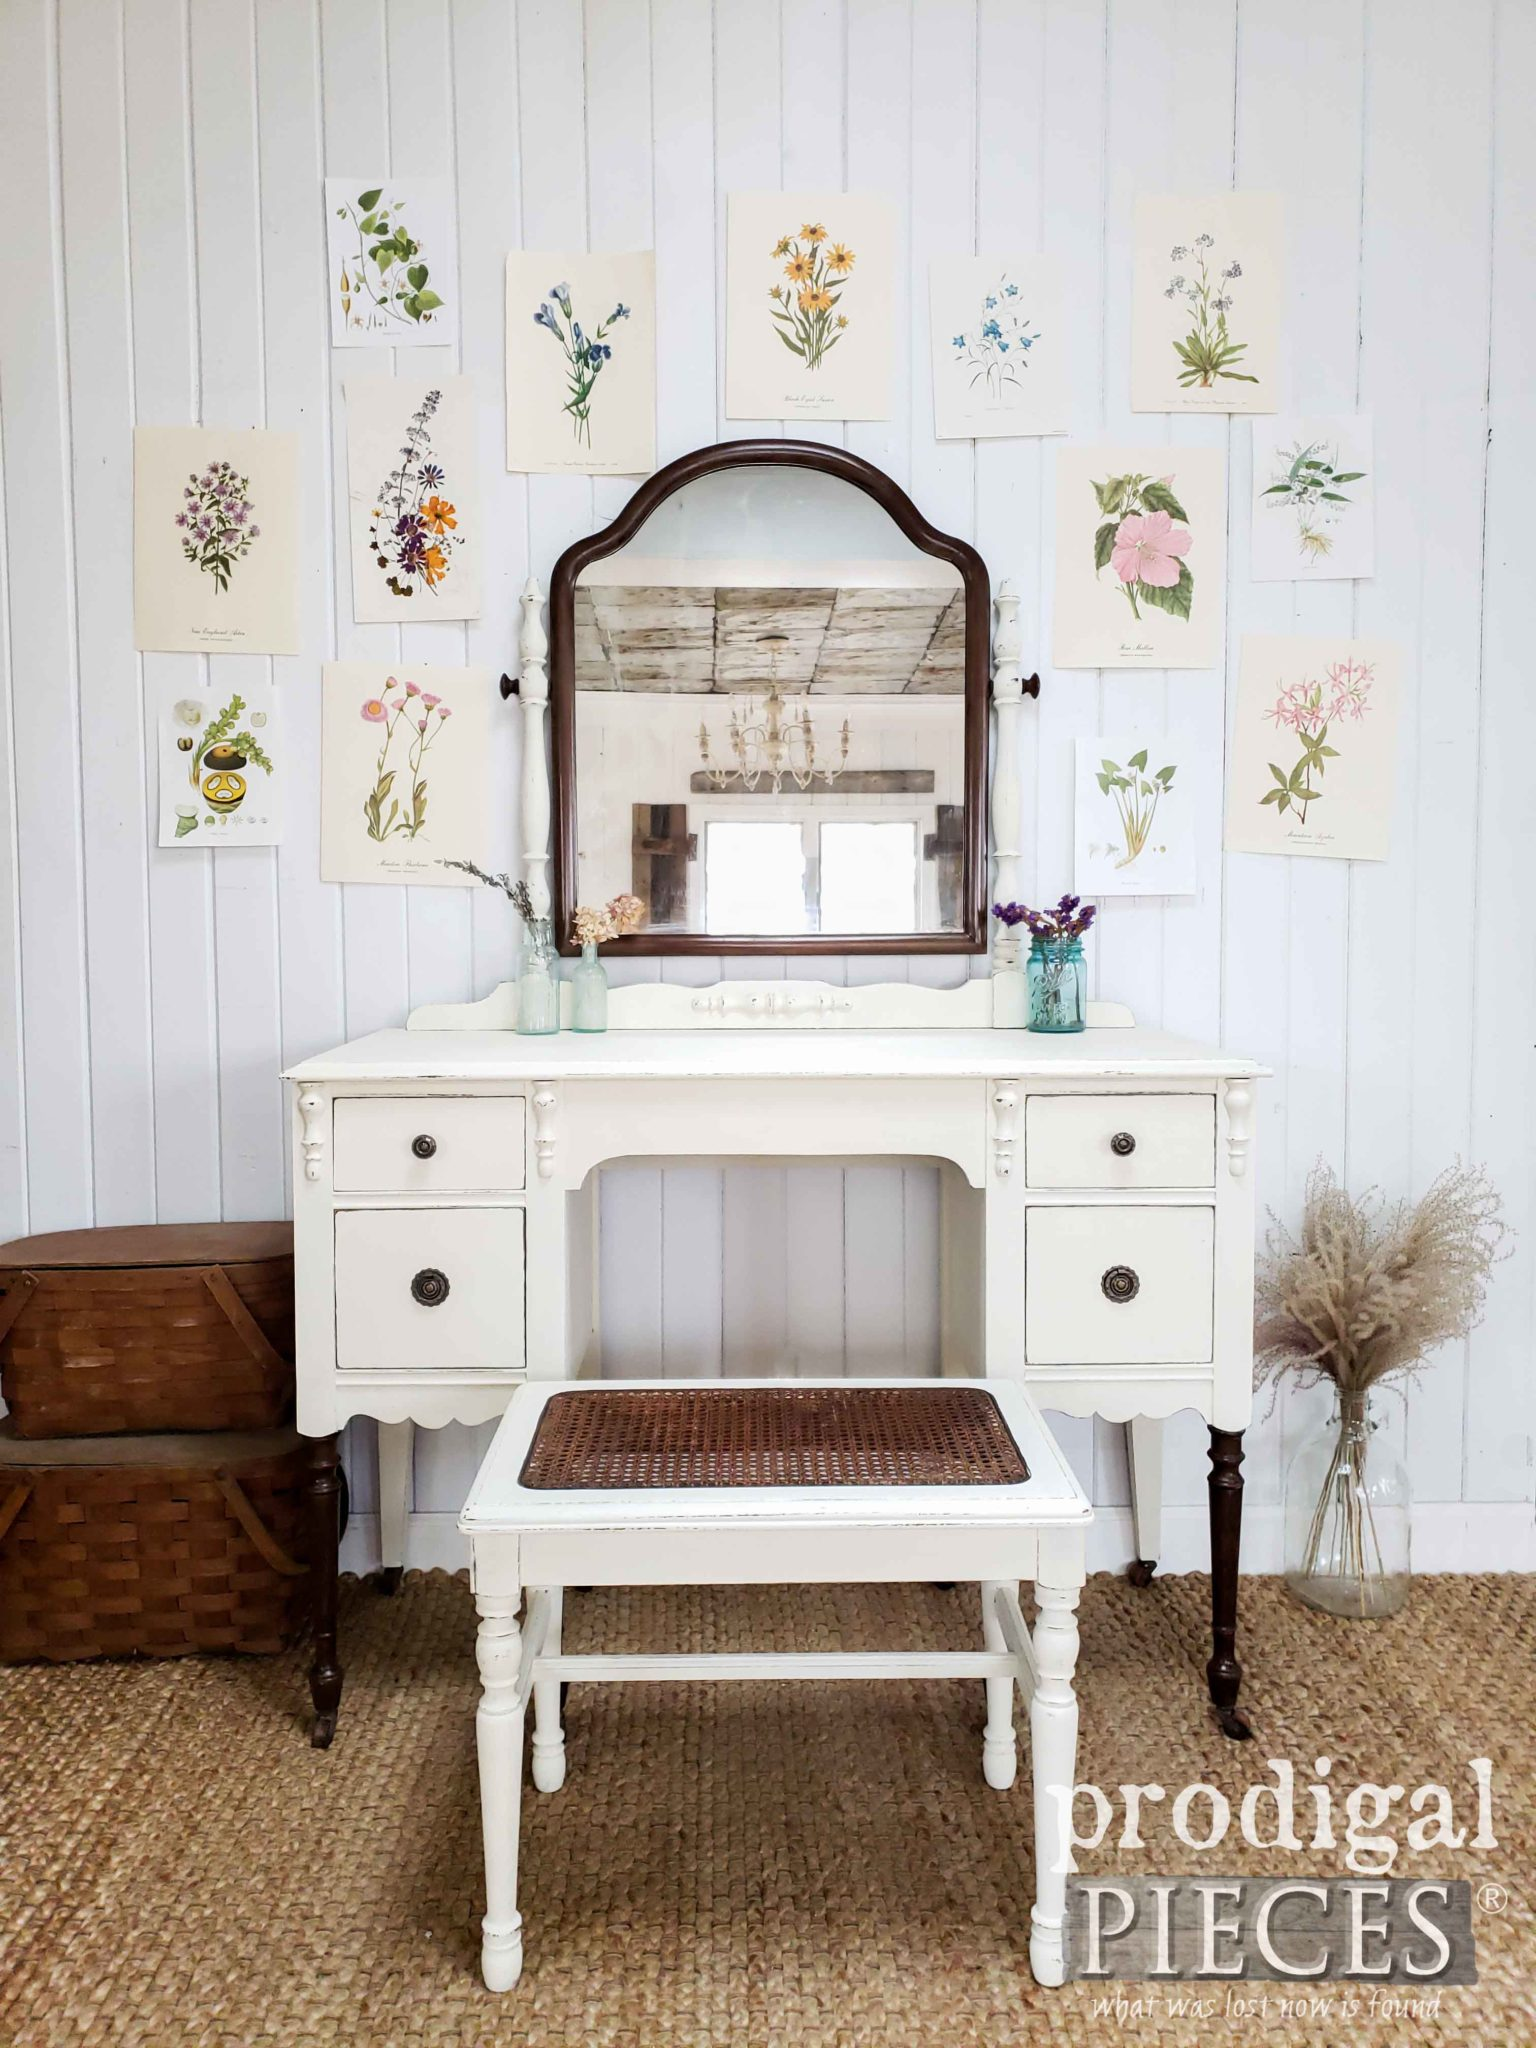 Farmhouse Style Antique Dressing Table Set Restored by Larissa of Prodigal Pieces | prodigalpiecdes.com #prodigalpieces #furniture #farmhouse #diy #home #homedecor #homedecorideas #shopping #vintage